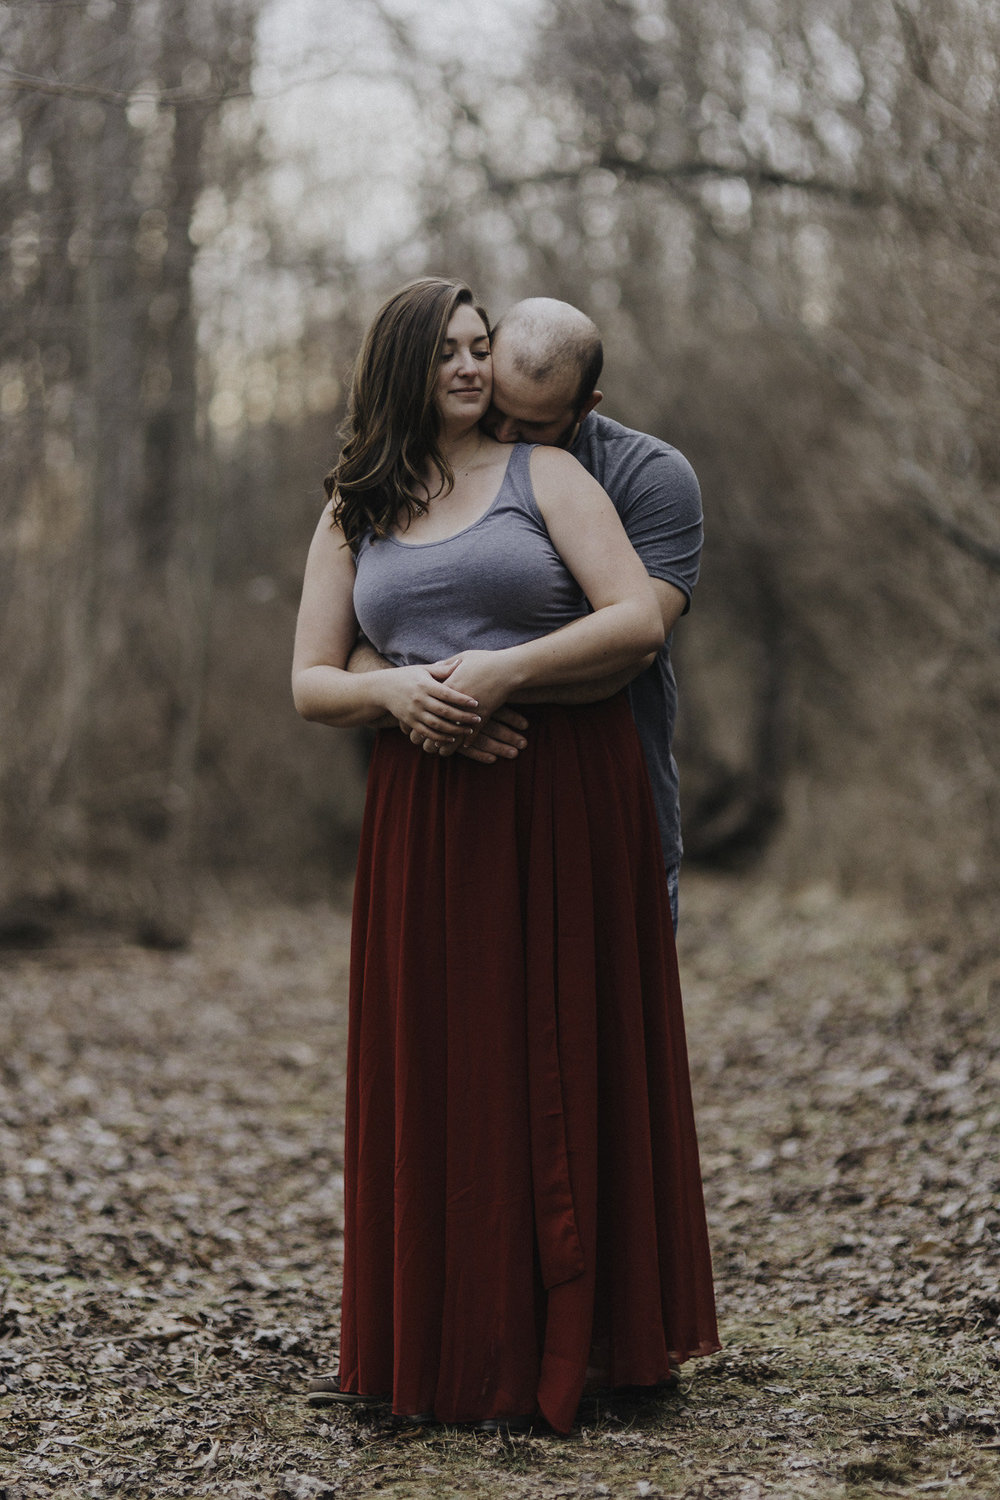 Cate_Ann_Photography_Dayton_Ohio_Wedding_Elopement_And_Engagement_PhotographerIMG_6688.jpg